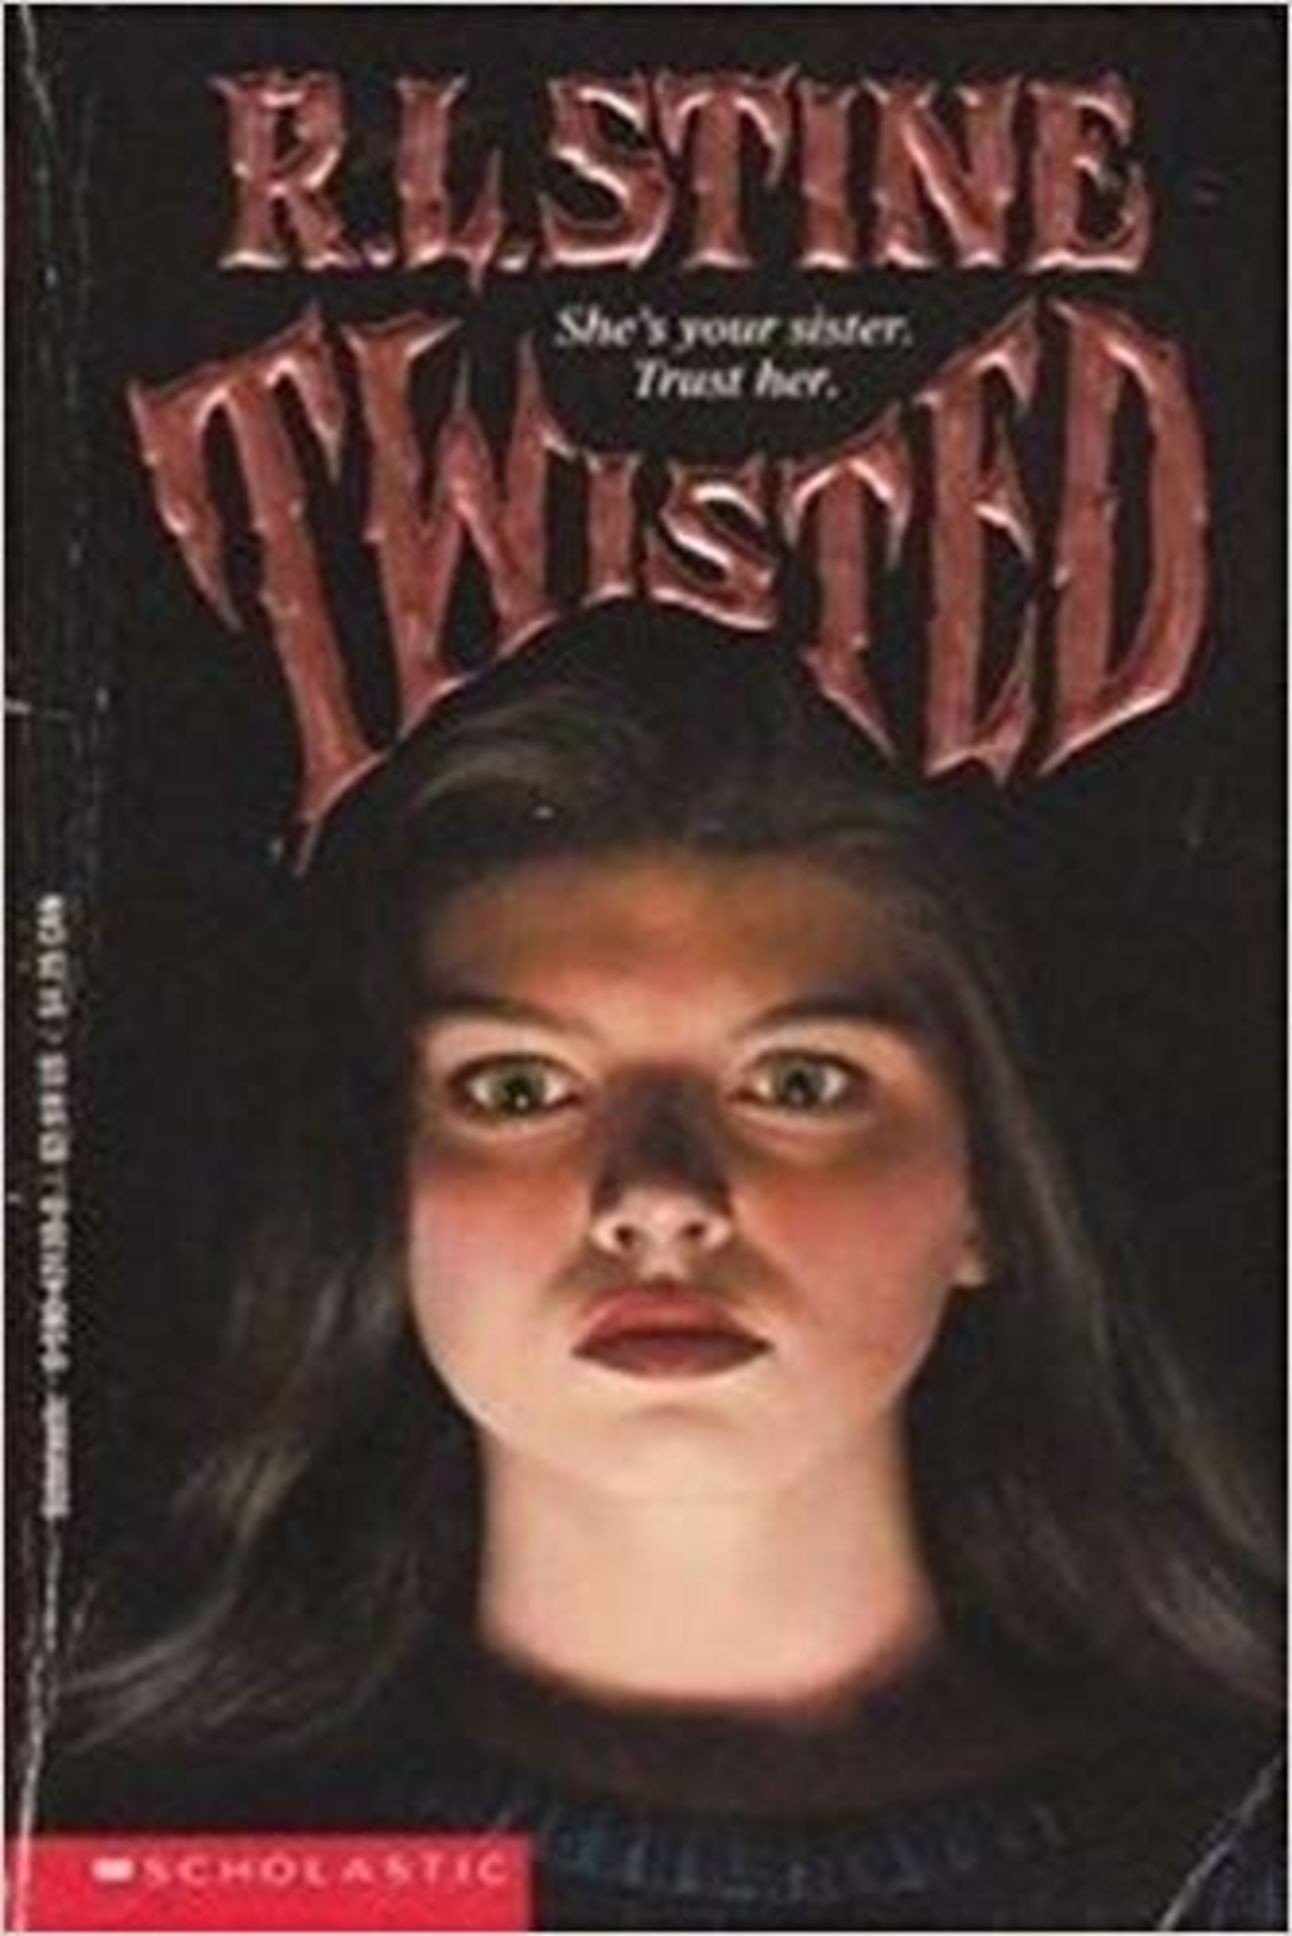 Twisted RL Stine